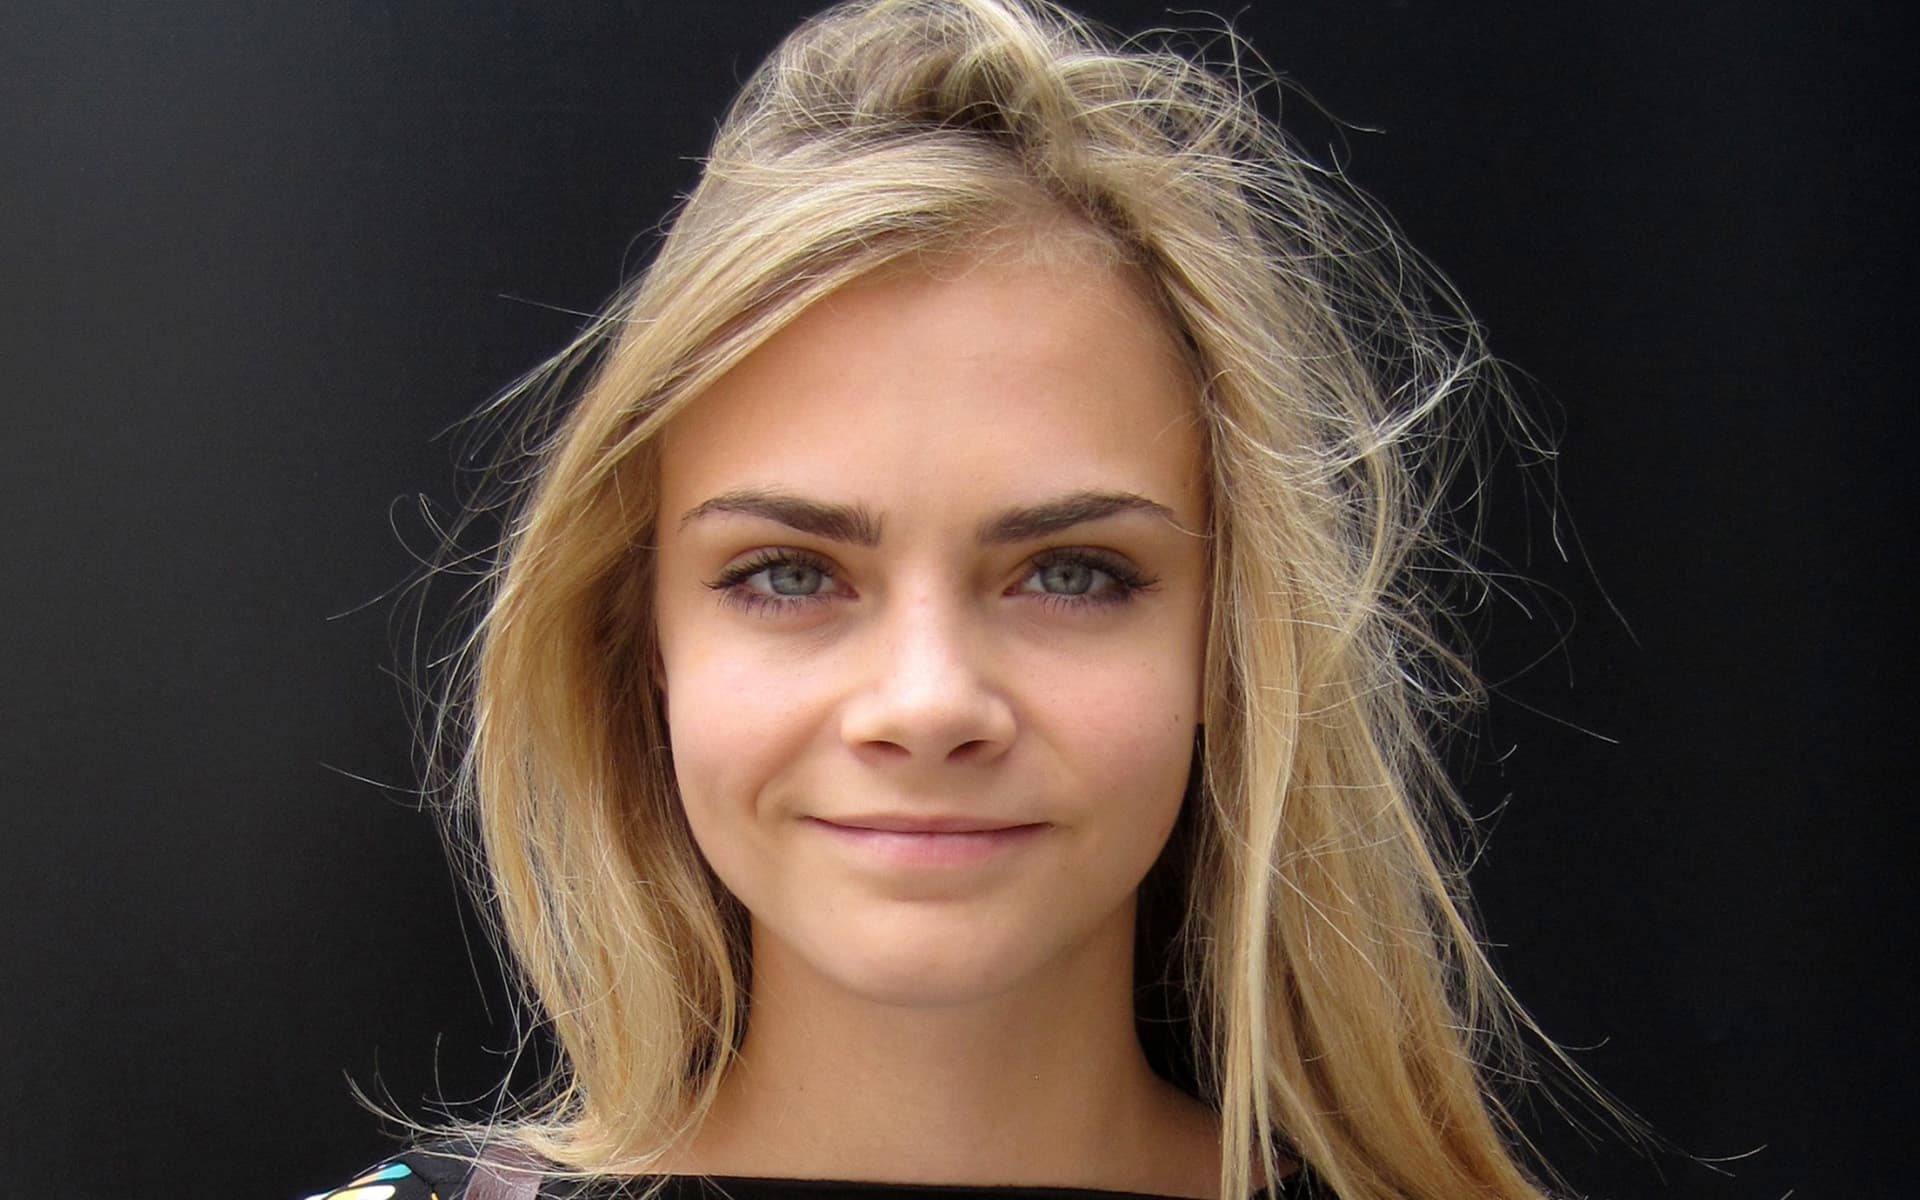 Cara delevingne face of an angel